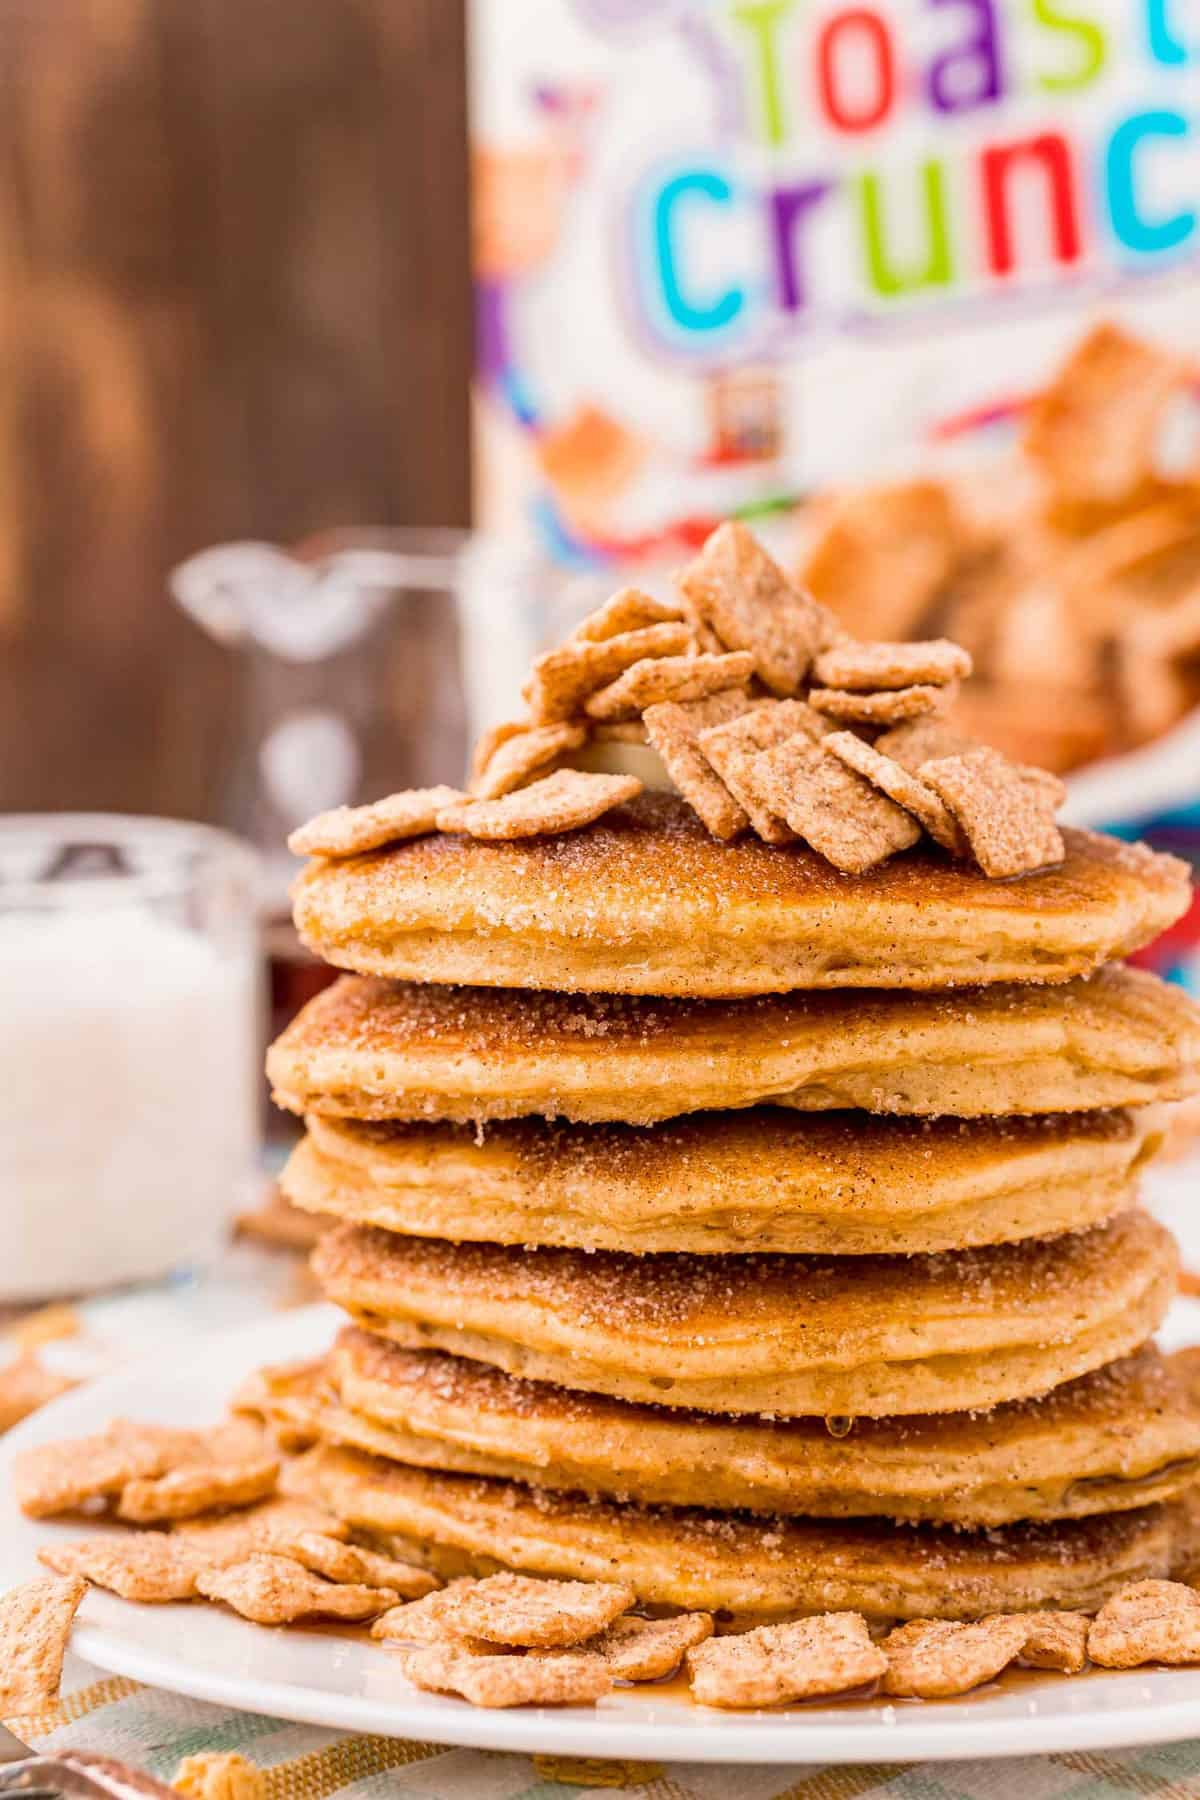 Tall stack of pancakes topped with cinnamon toast crunch cereal.